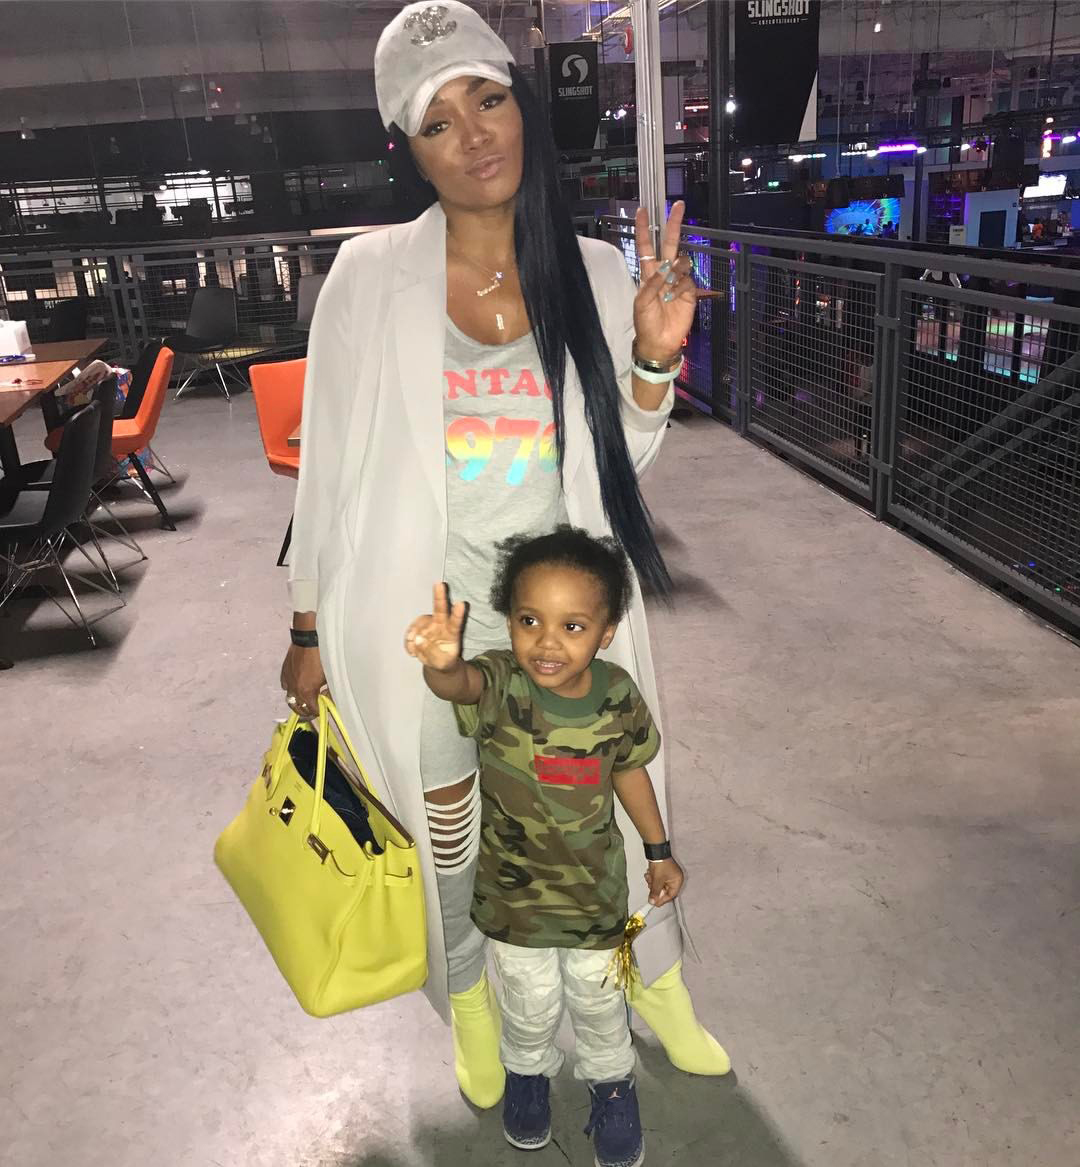 Rasheeda Frost Gushes Over Tami Roman's 'Ever After' - Check Out The Sneak Peek Video She Shared